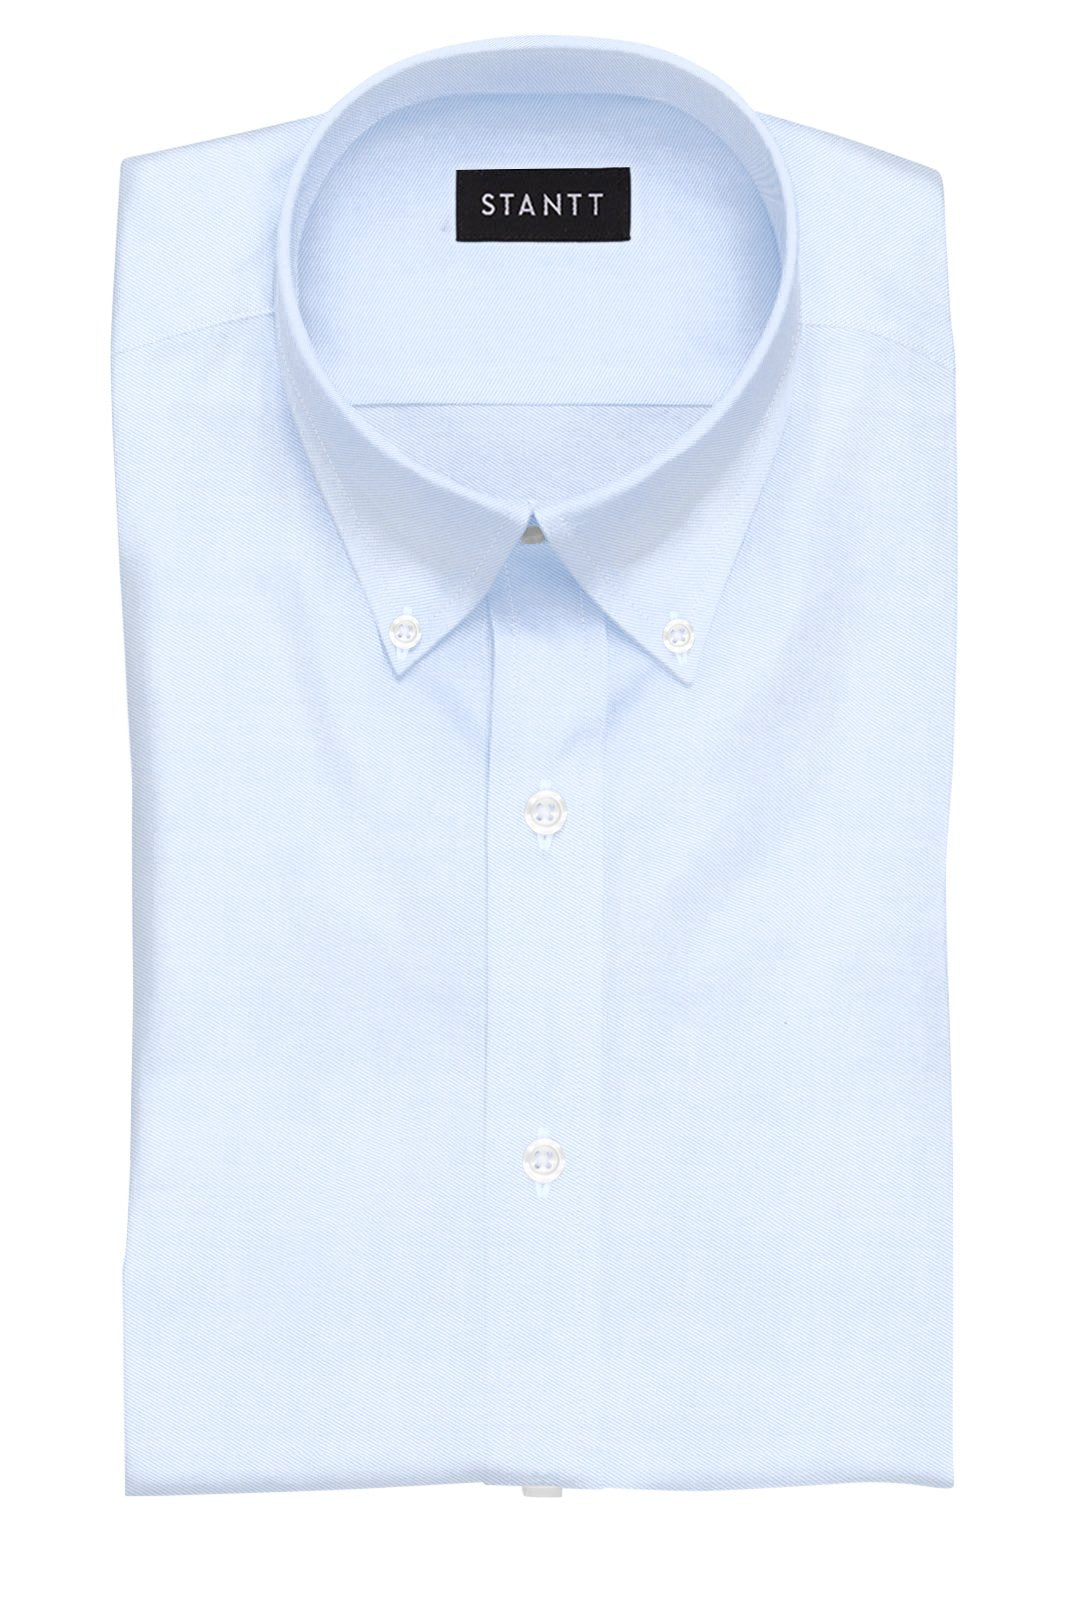 Fine Blue Twill: Button-Down Collar, Barrel Cuff